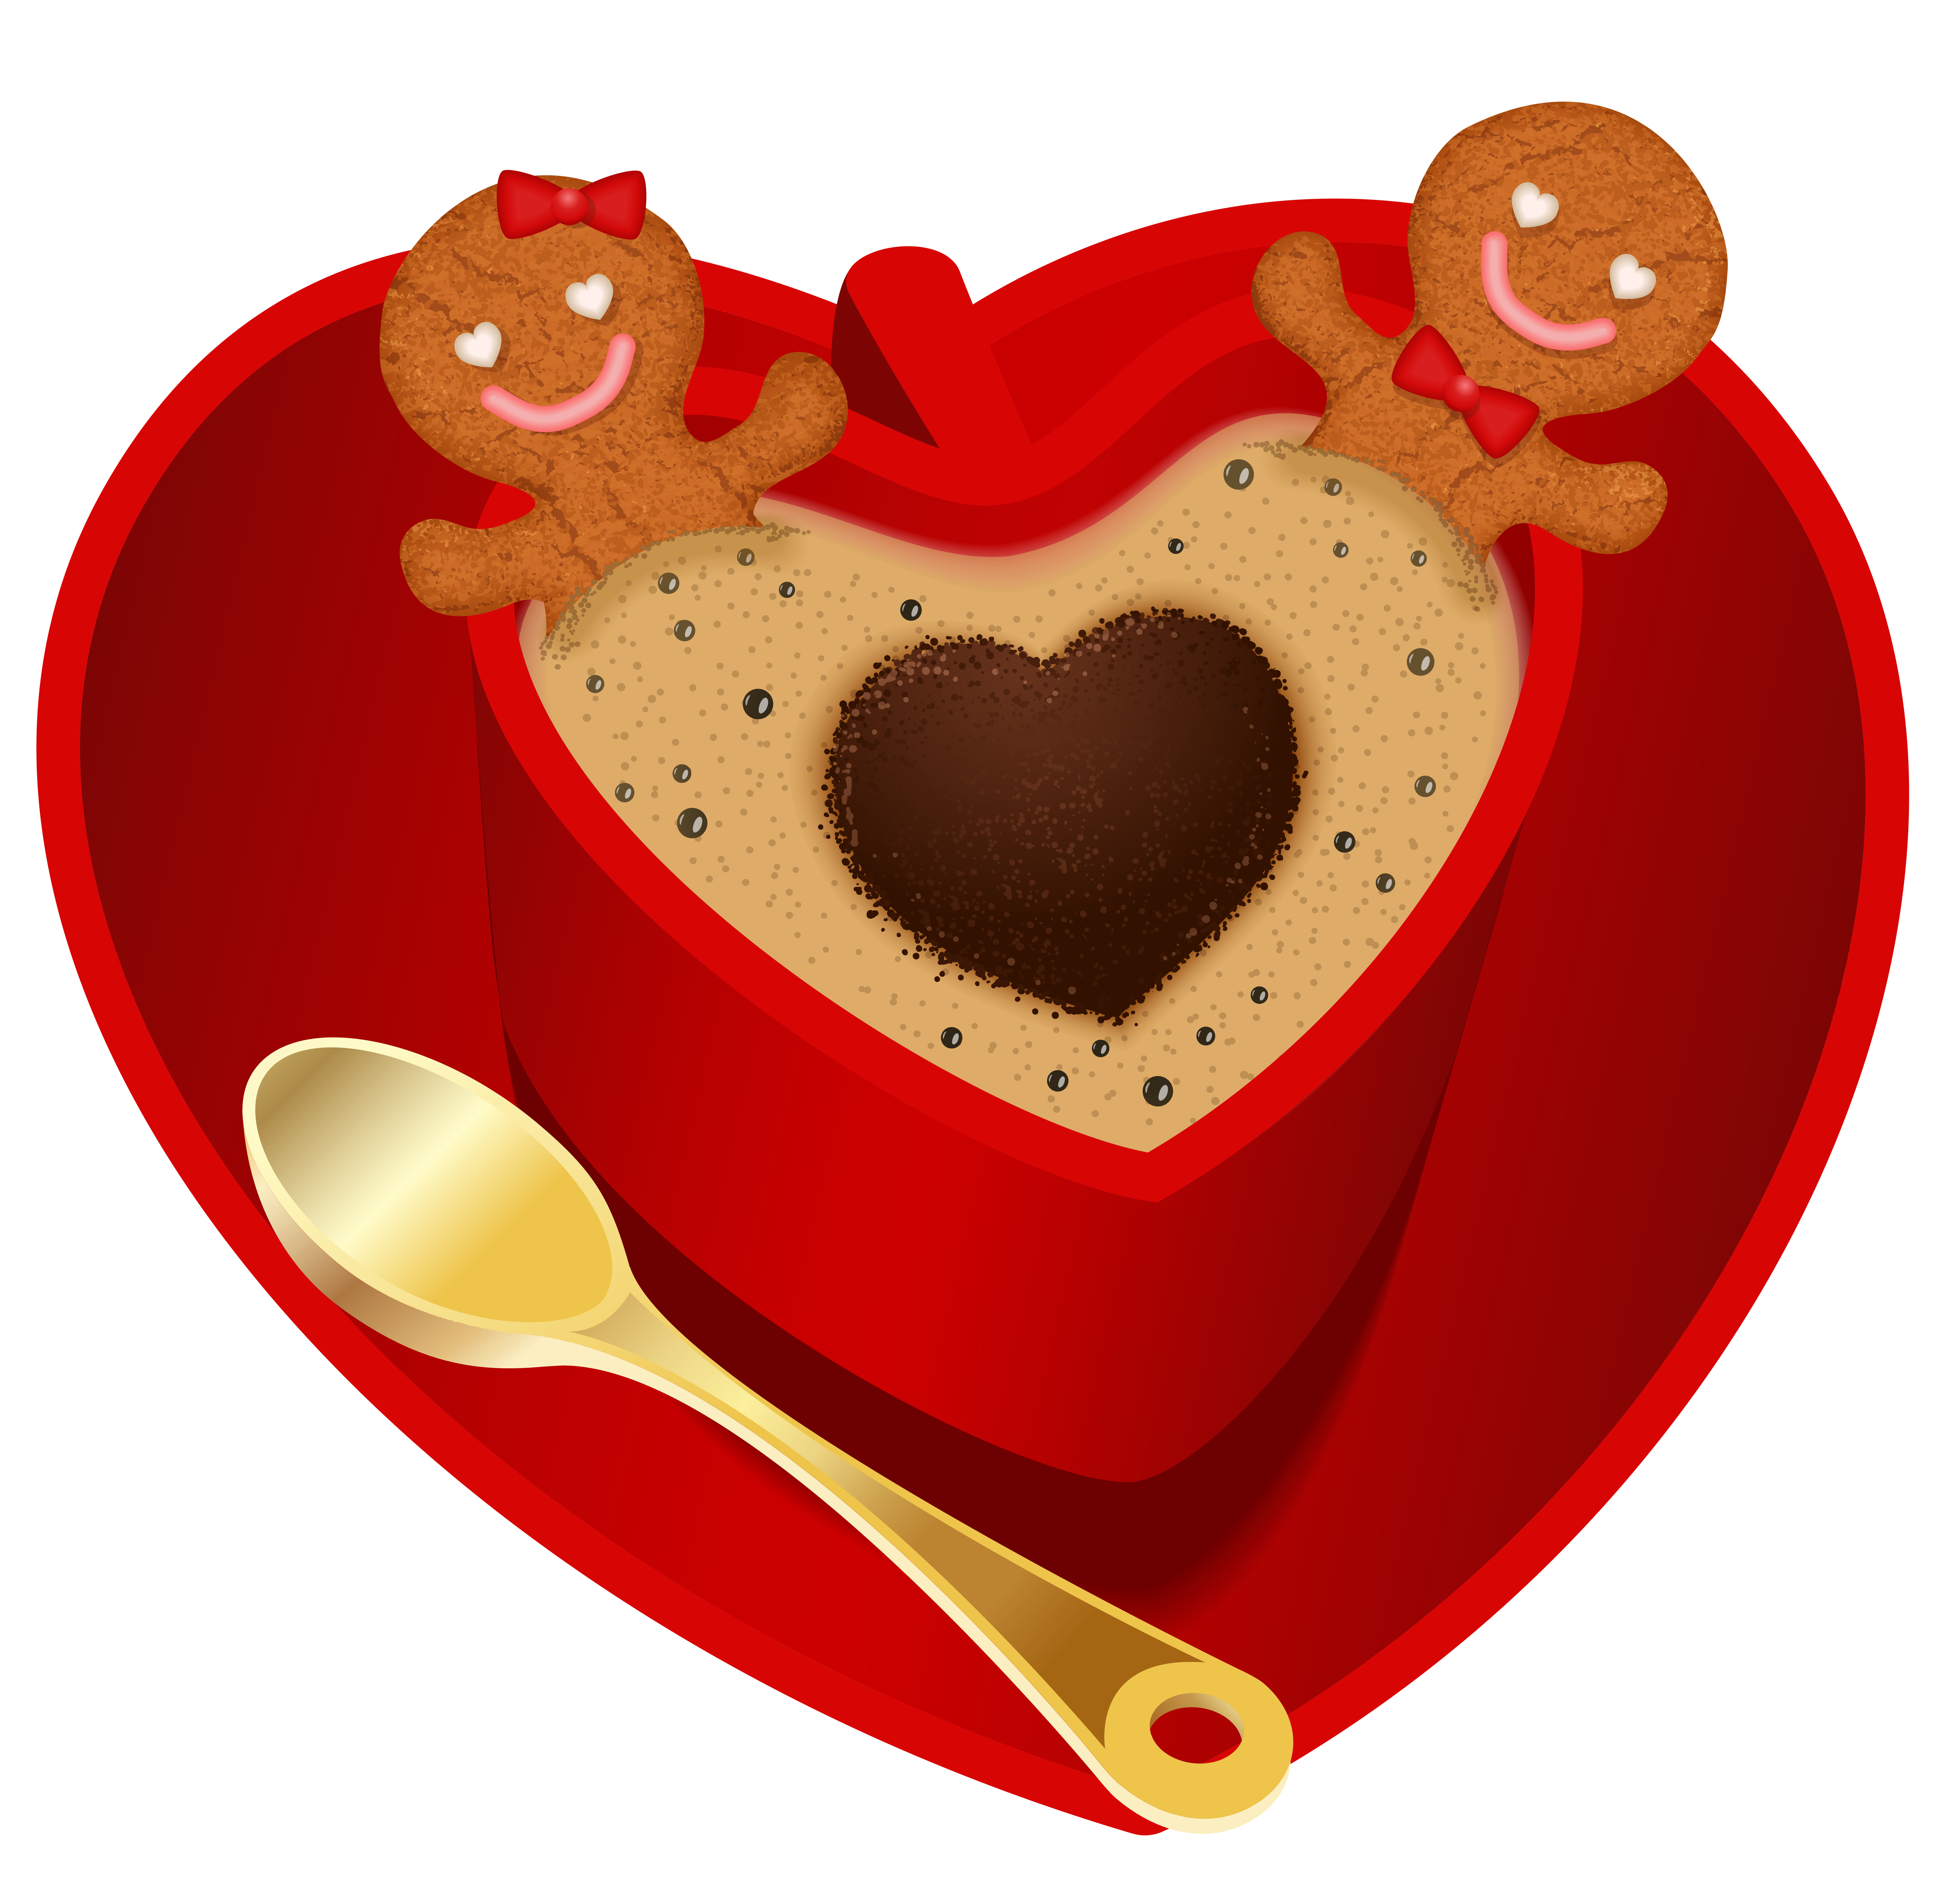 Christmas png clip art. Hearts clipart coffee cup